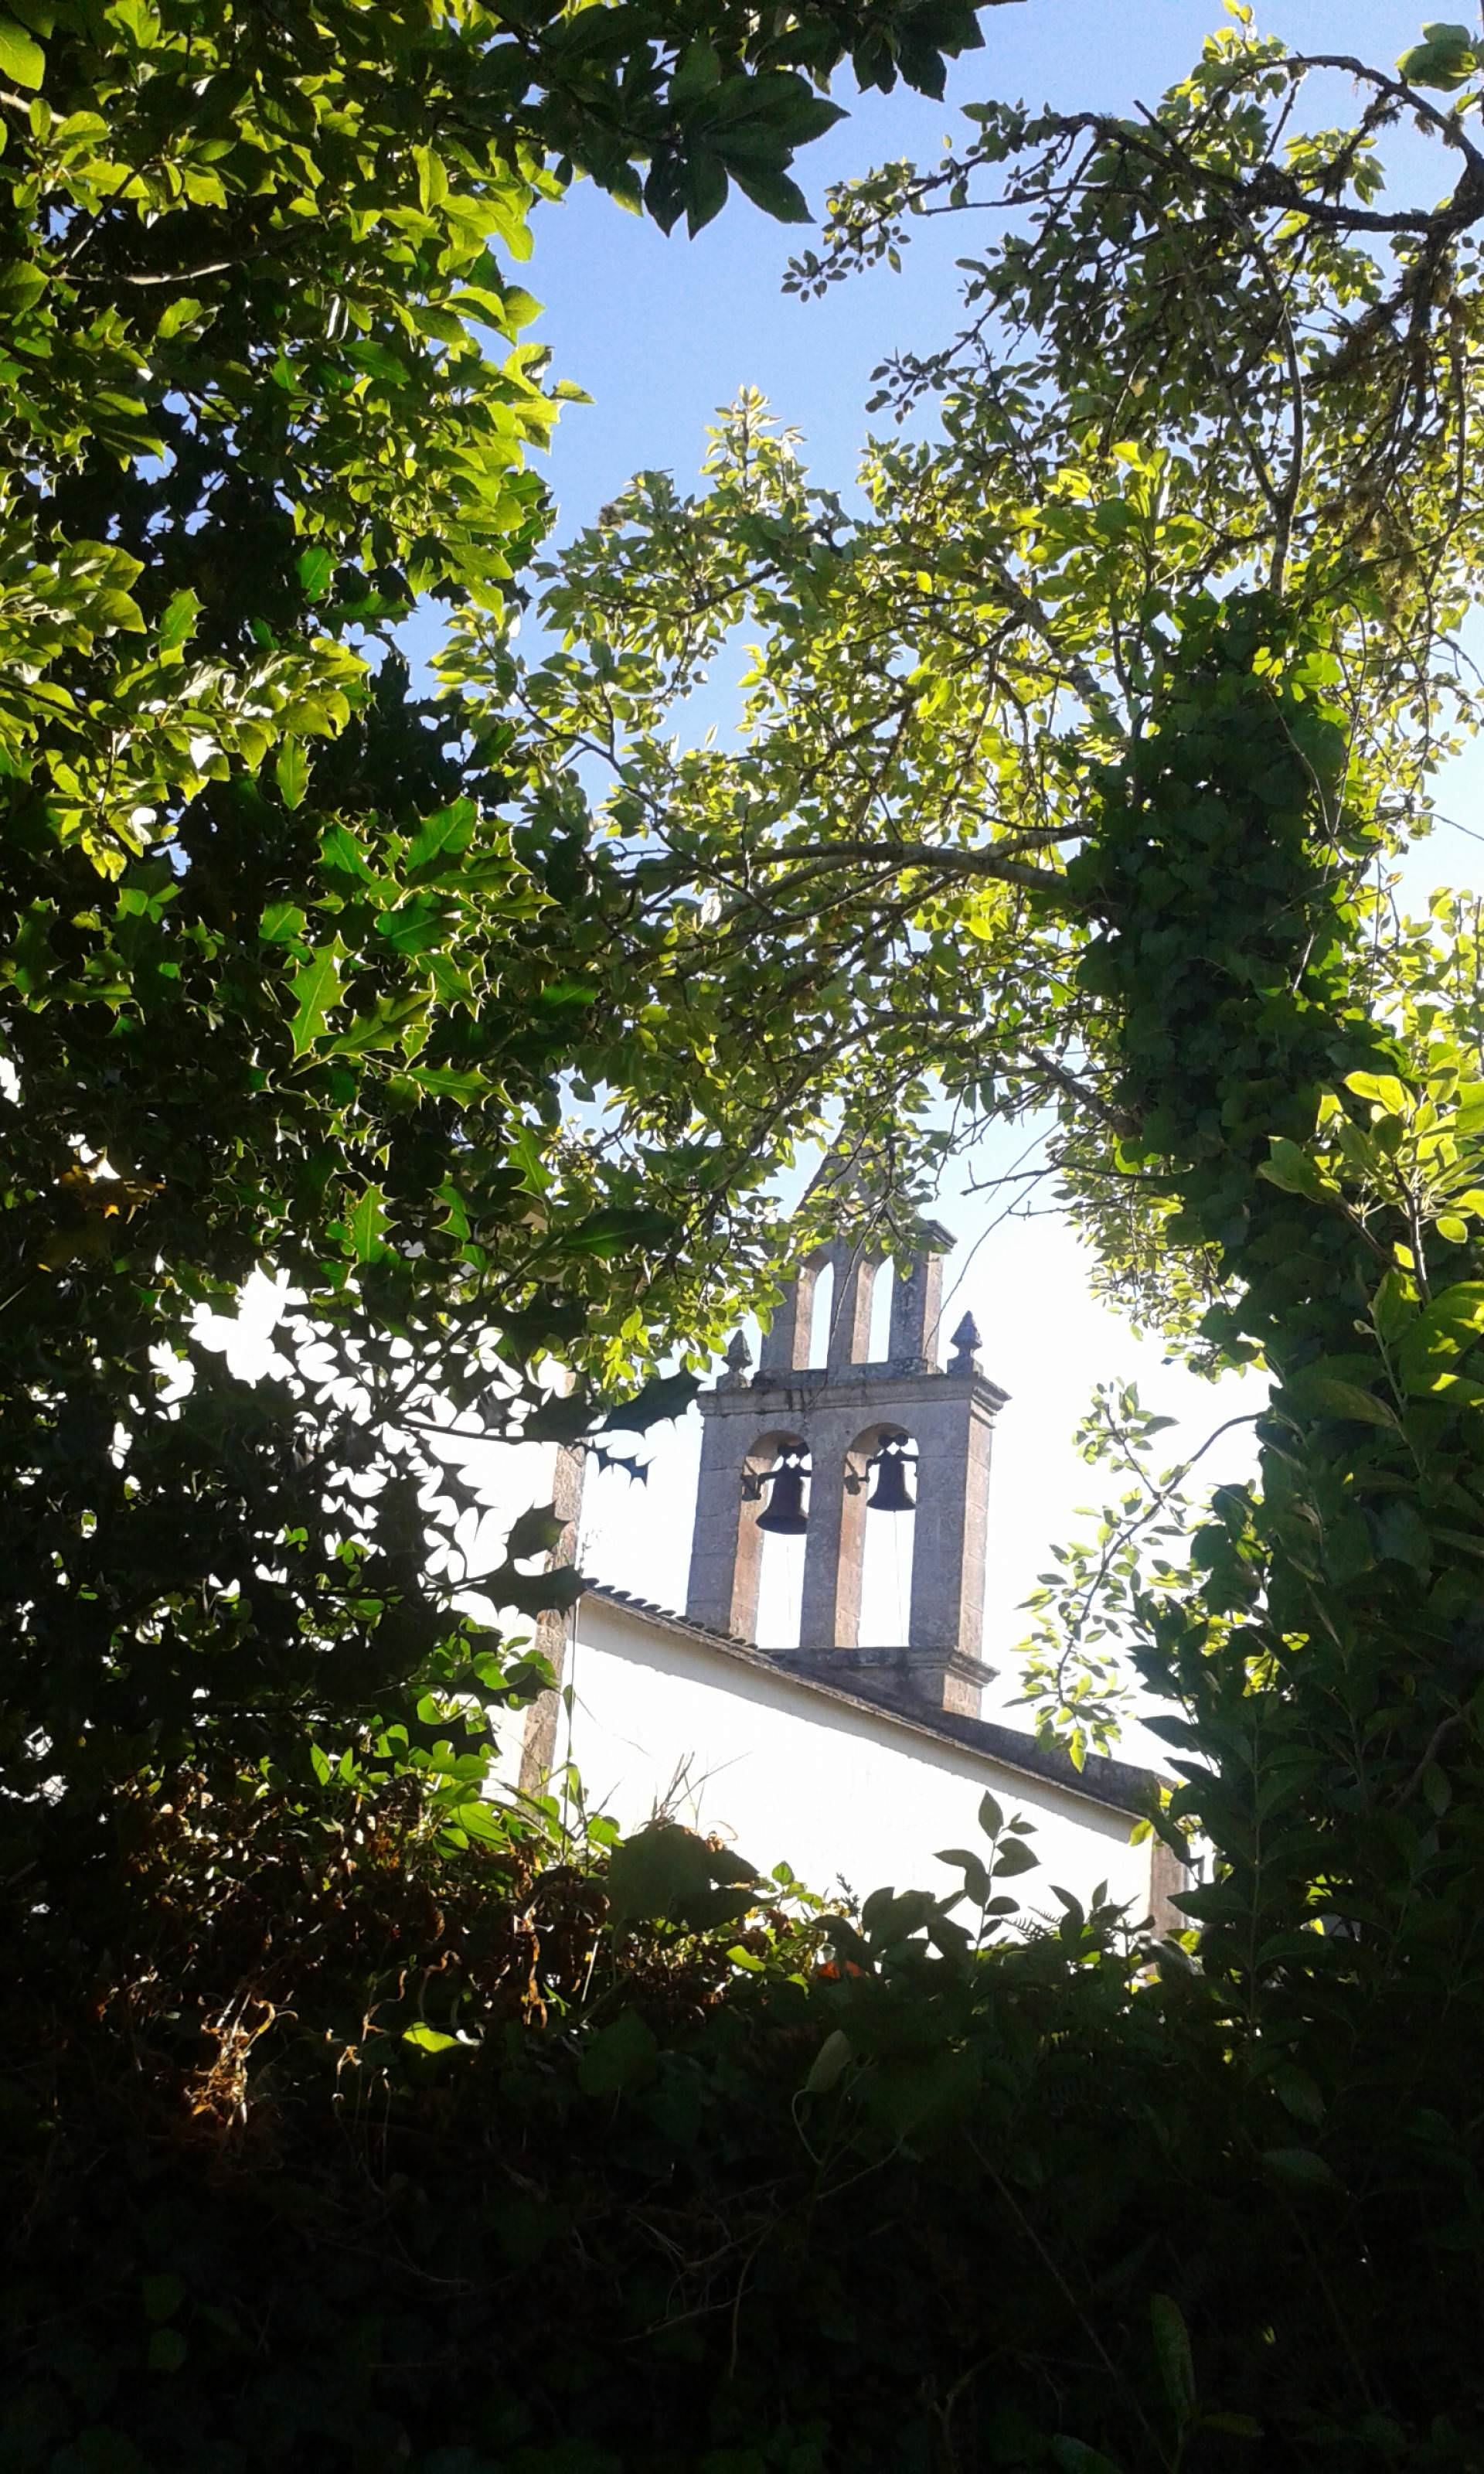 church, bell tower, temple, nature, garden, tree, house of god, house of prayer